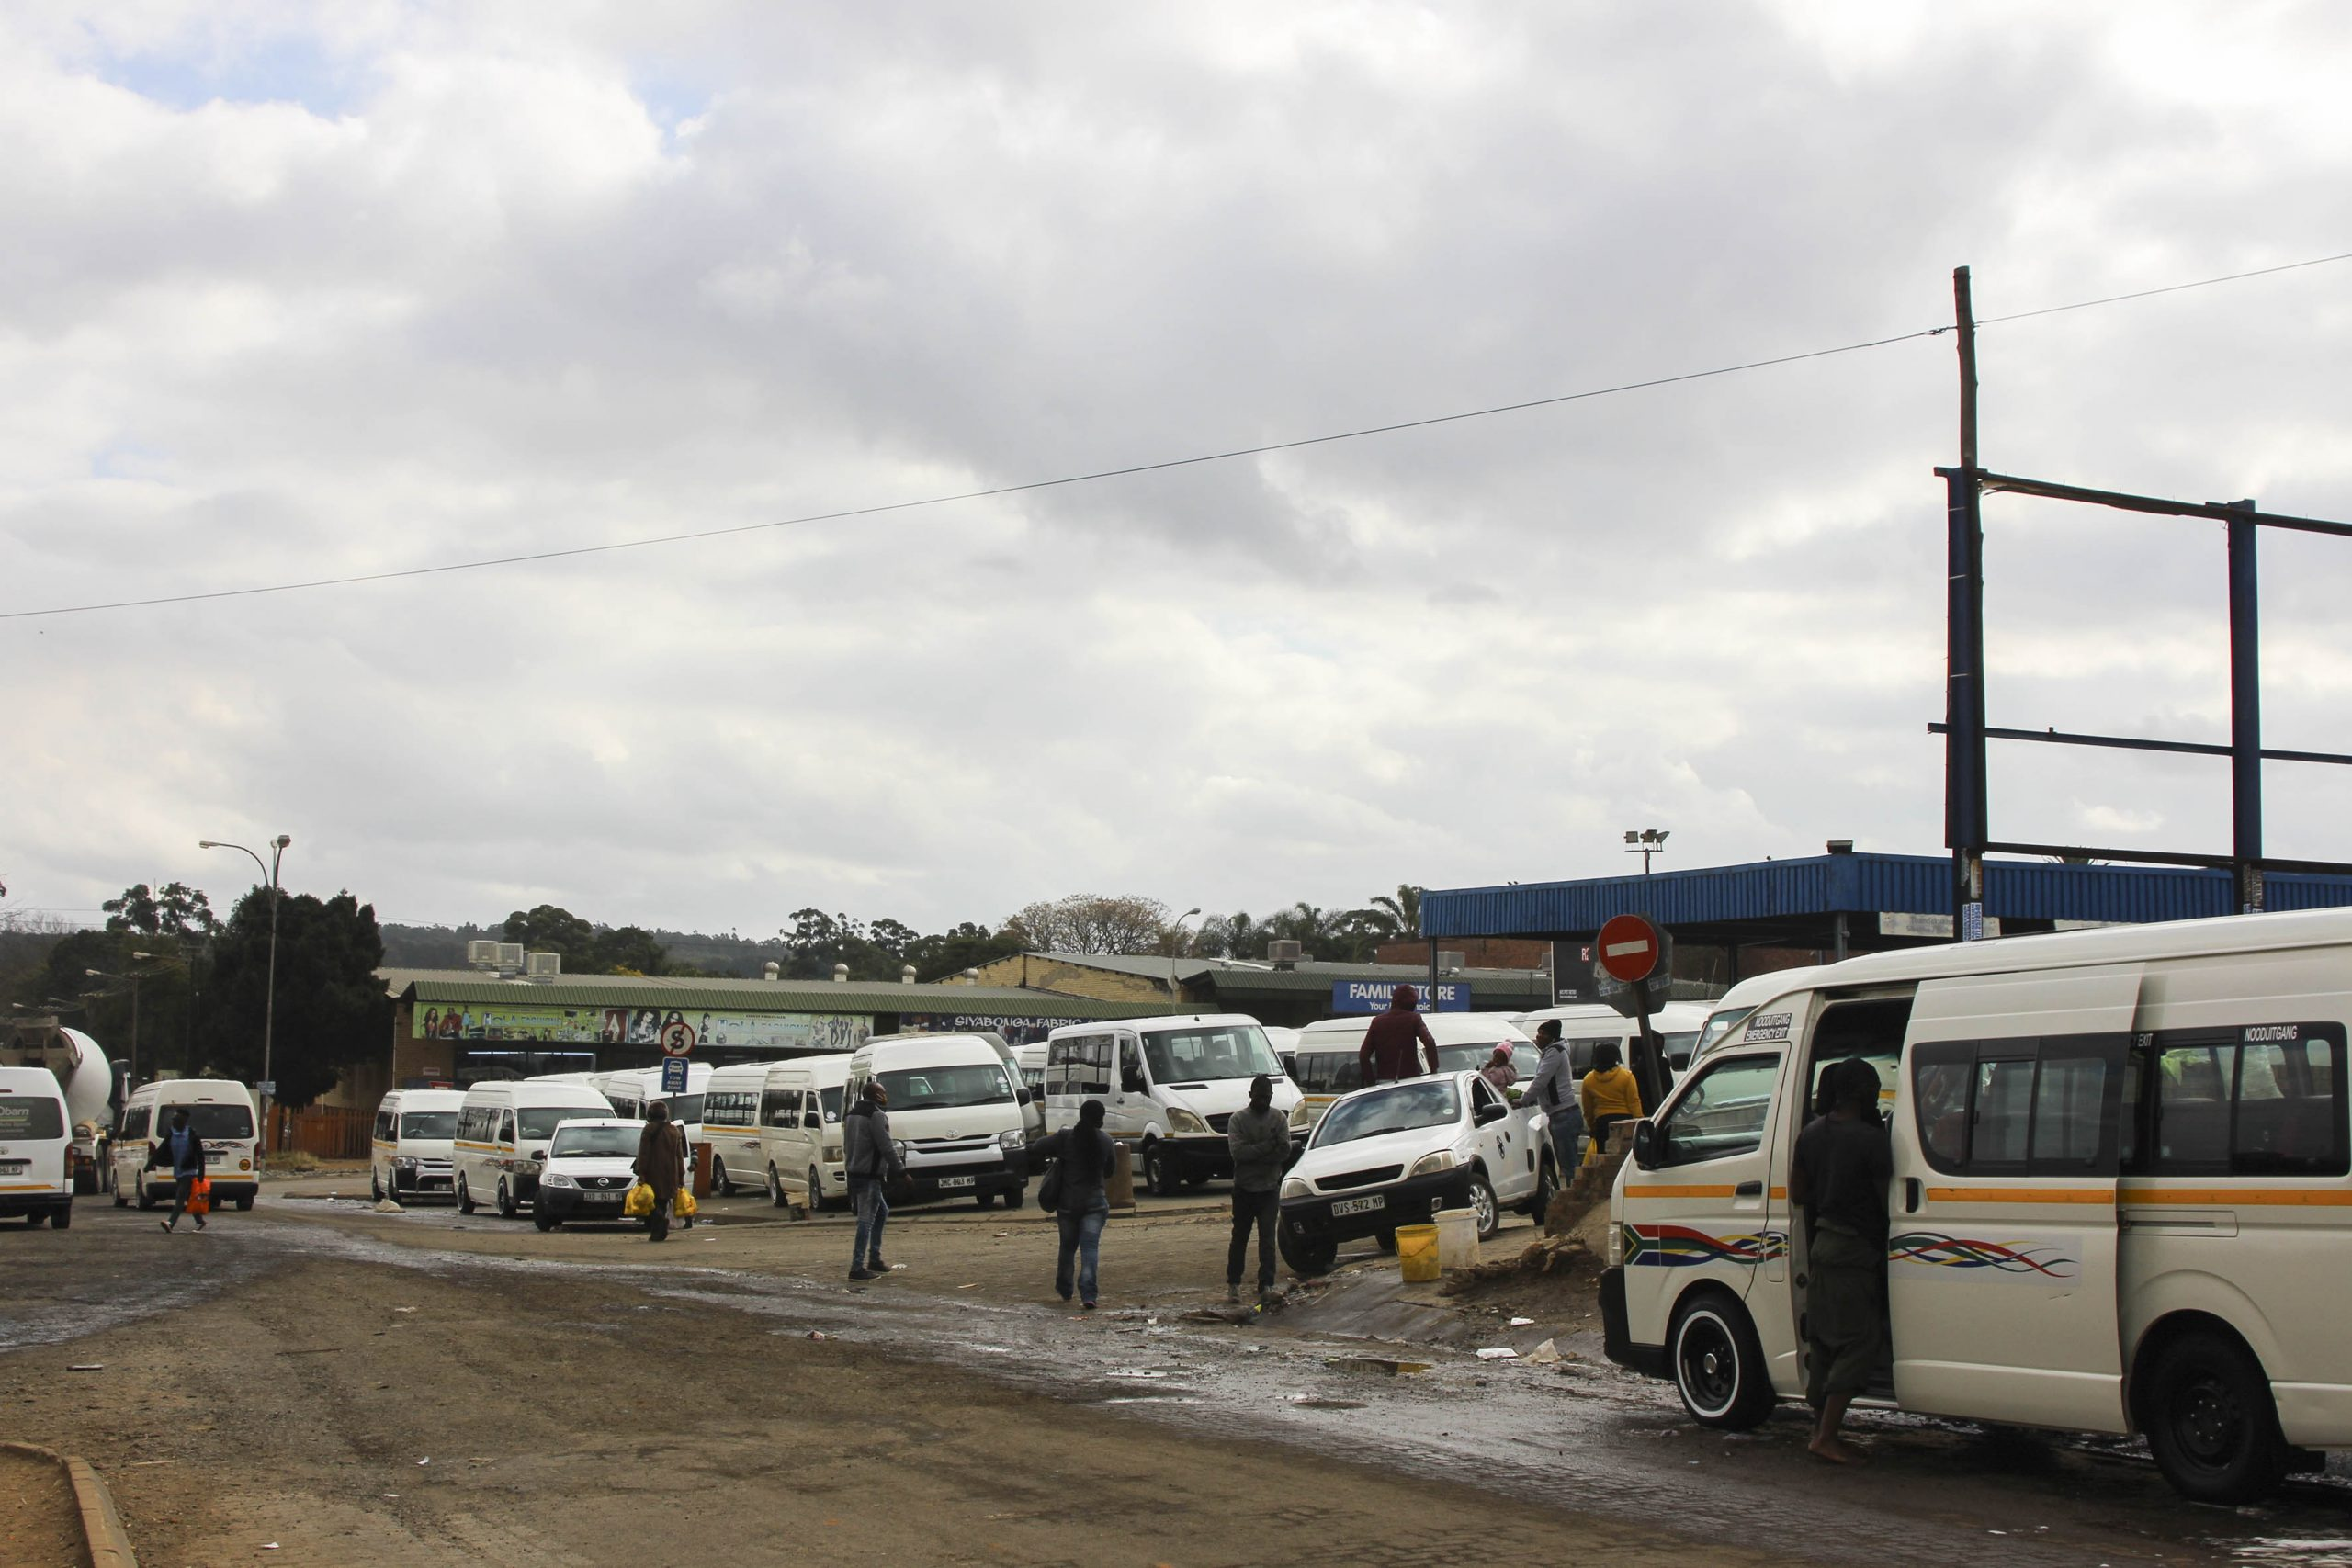 8 June 2020: Taxis stand ready to take passengers to various destinations in Mkhondo and surrounding villages, while others prepare for long-distance trips to provinces such as KwaZulu-Natal and Gauteng. (Photograph by Magnificent Mndebele)